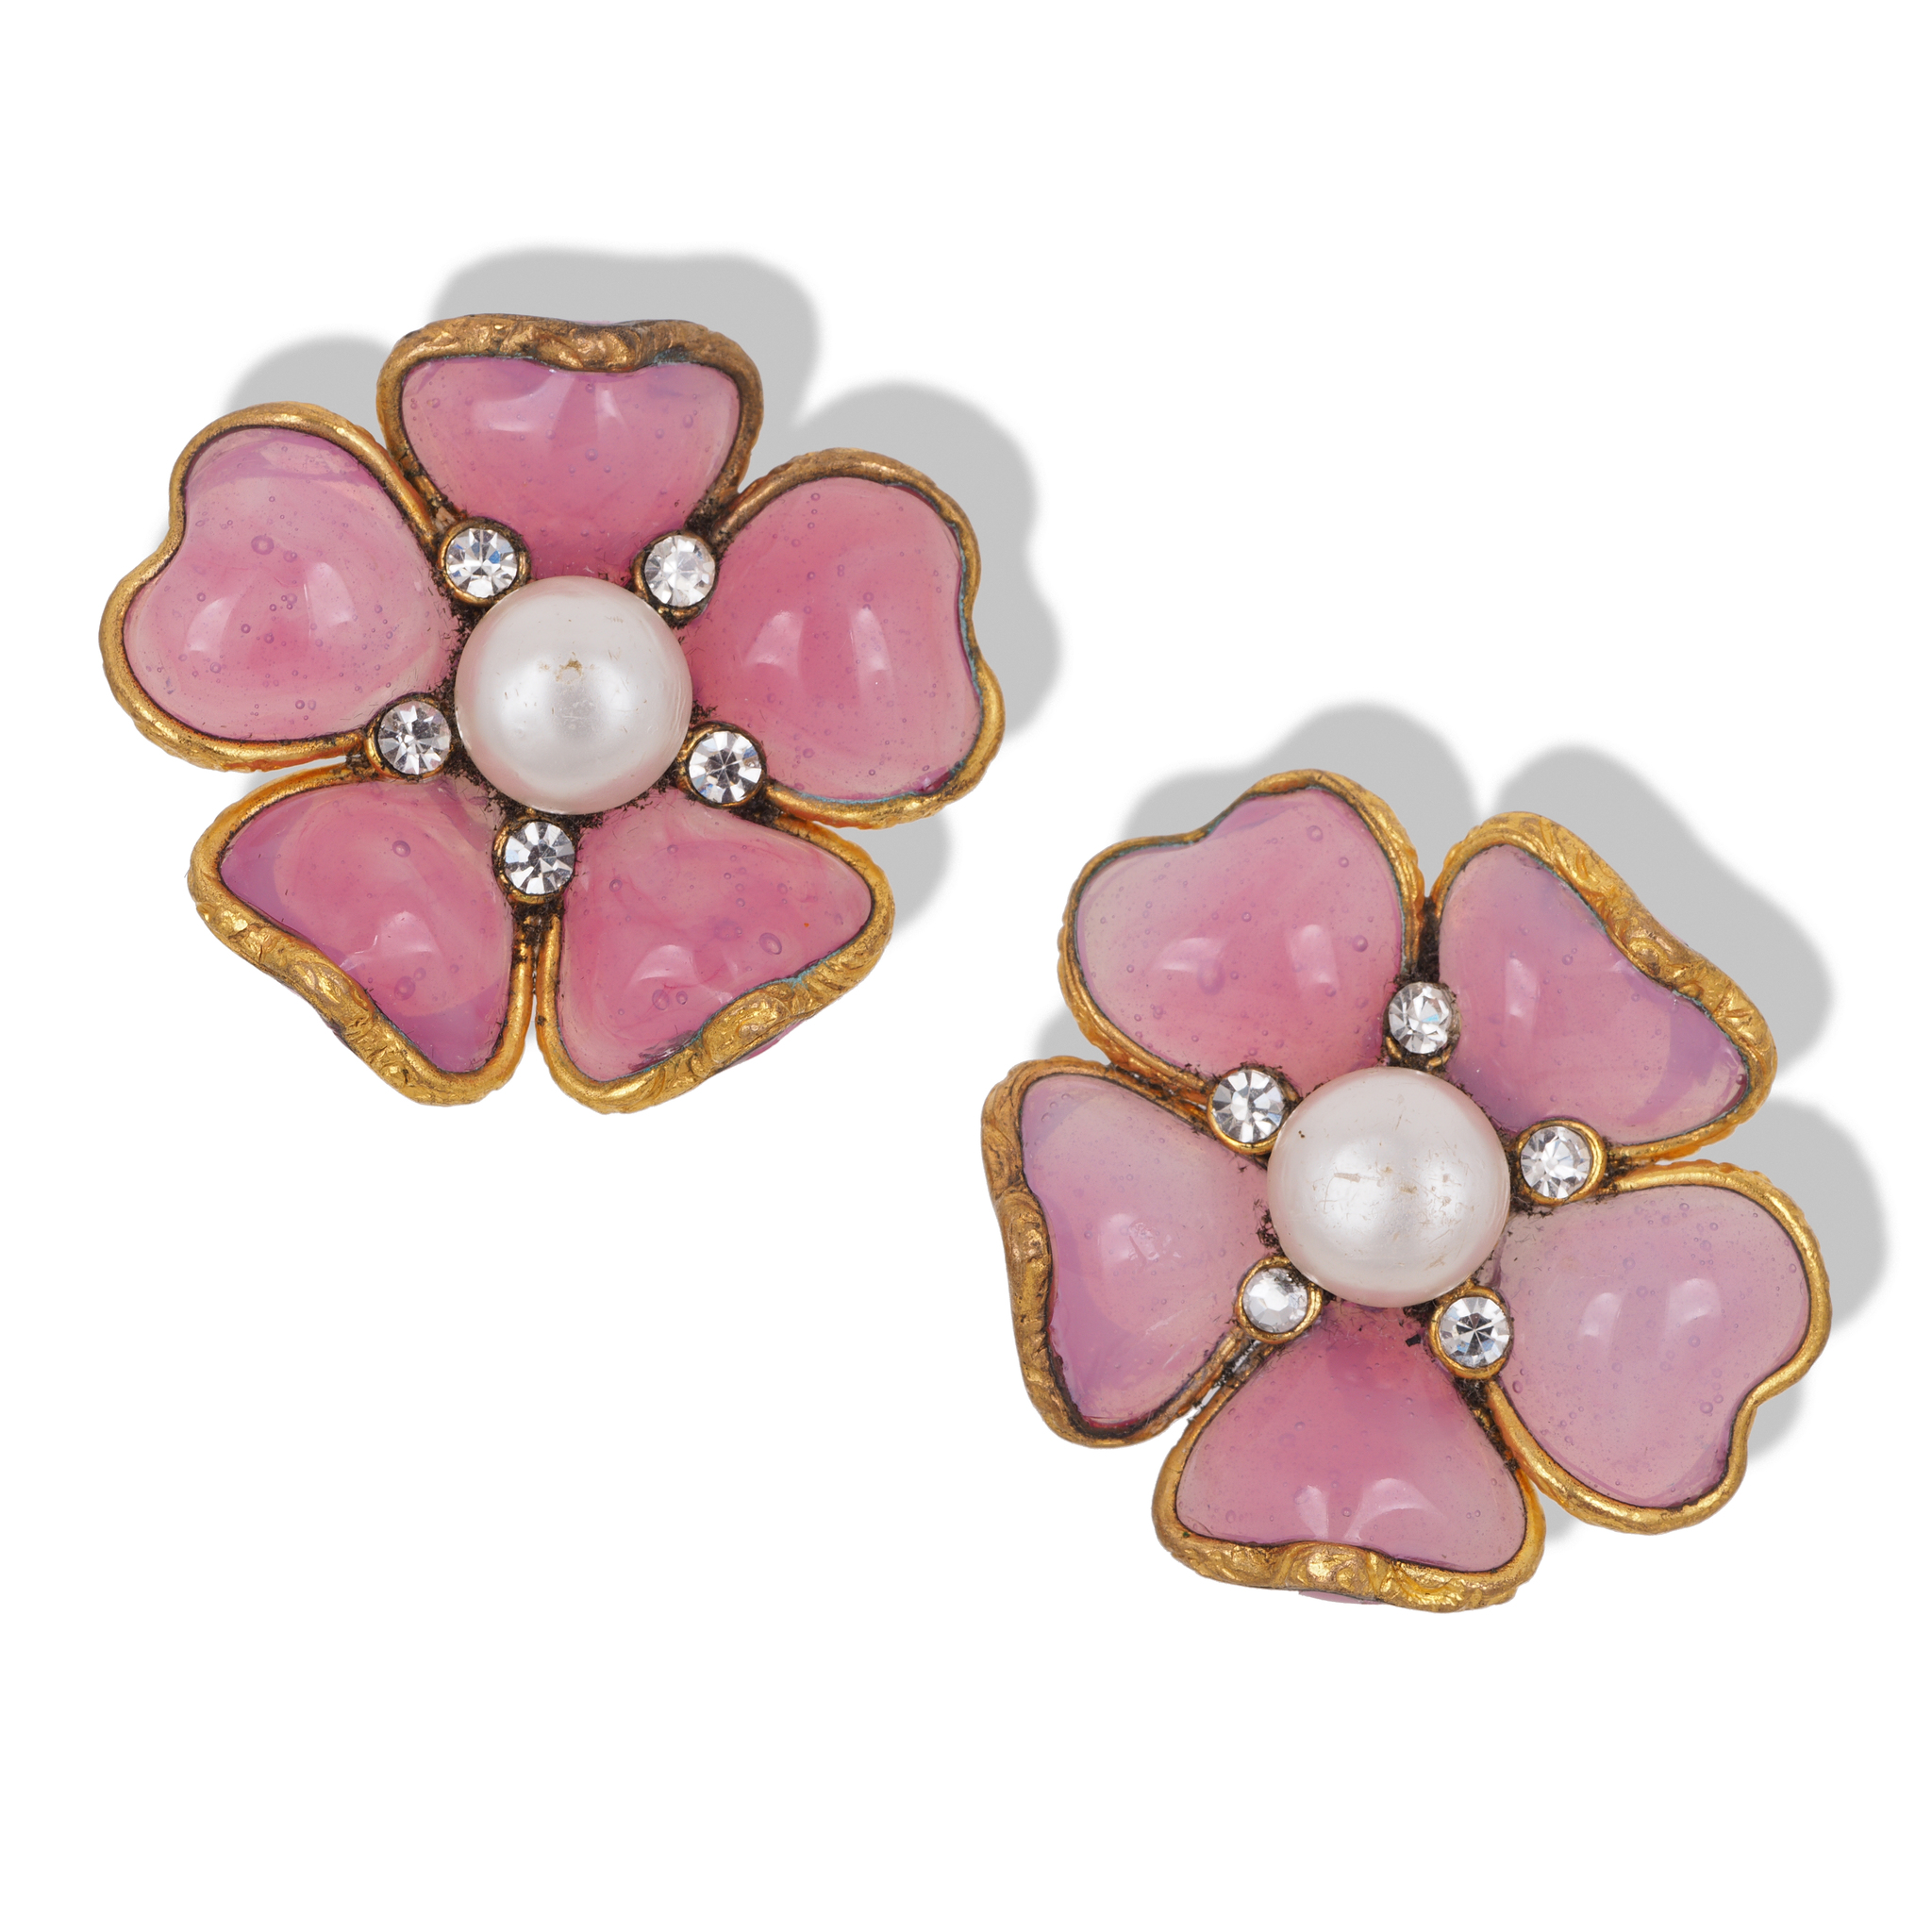 Клипсы Chanel со стеклом Gripoix  |   Chanel Gripoix, Faux Pearl and Crystal Flower Clip-on Earrings. 1970s-1980s